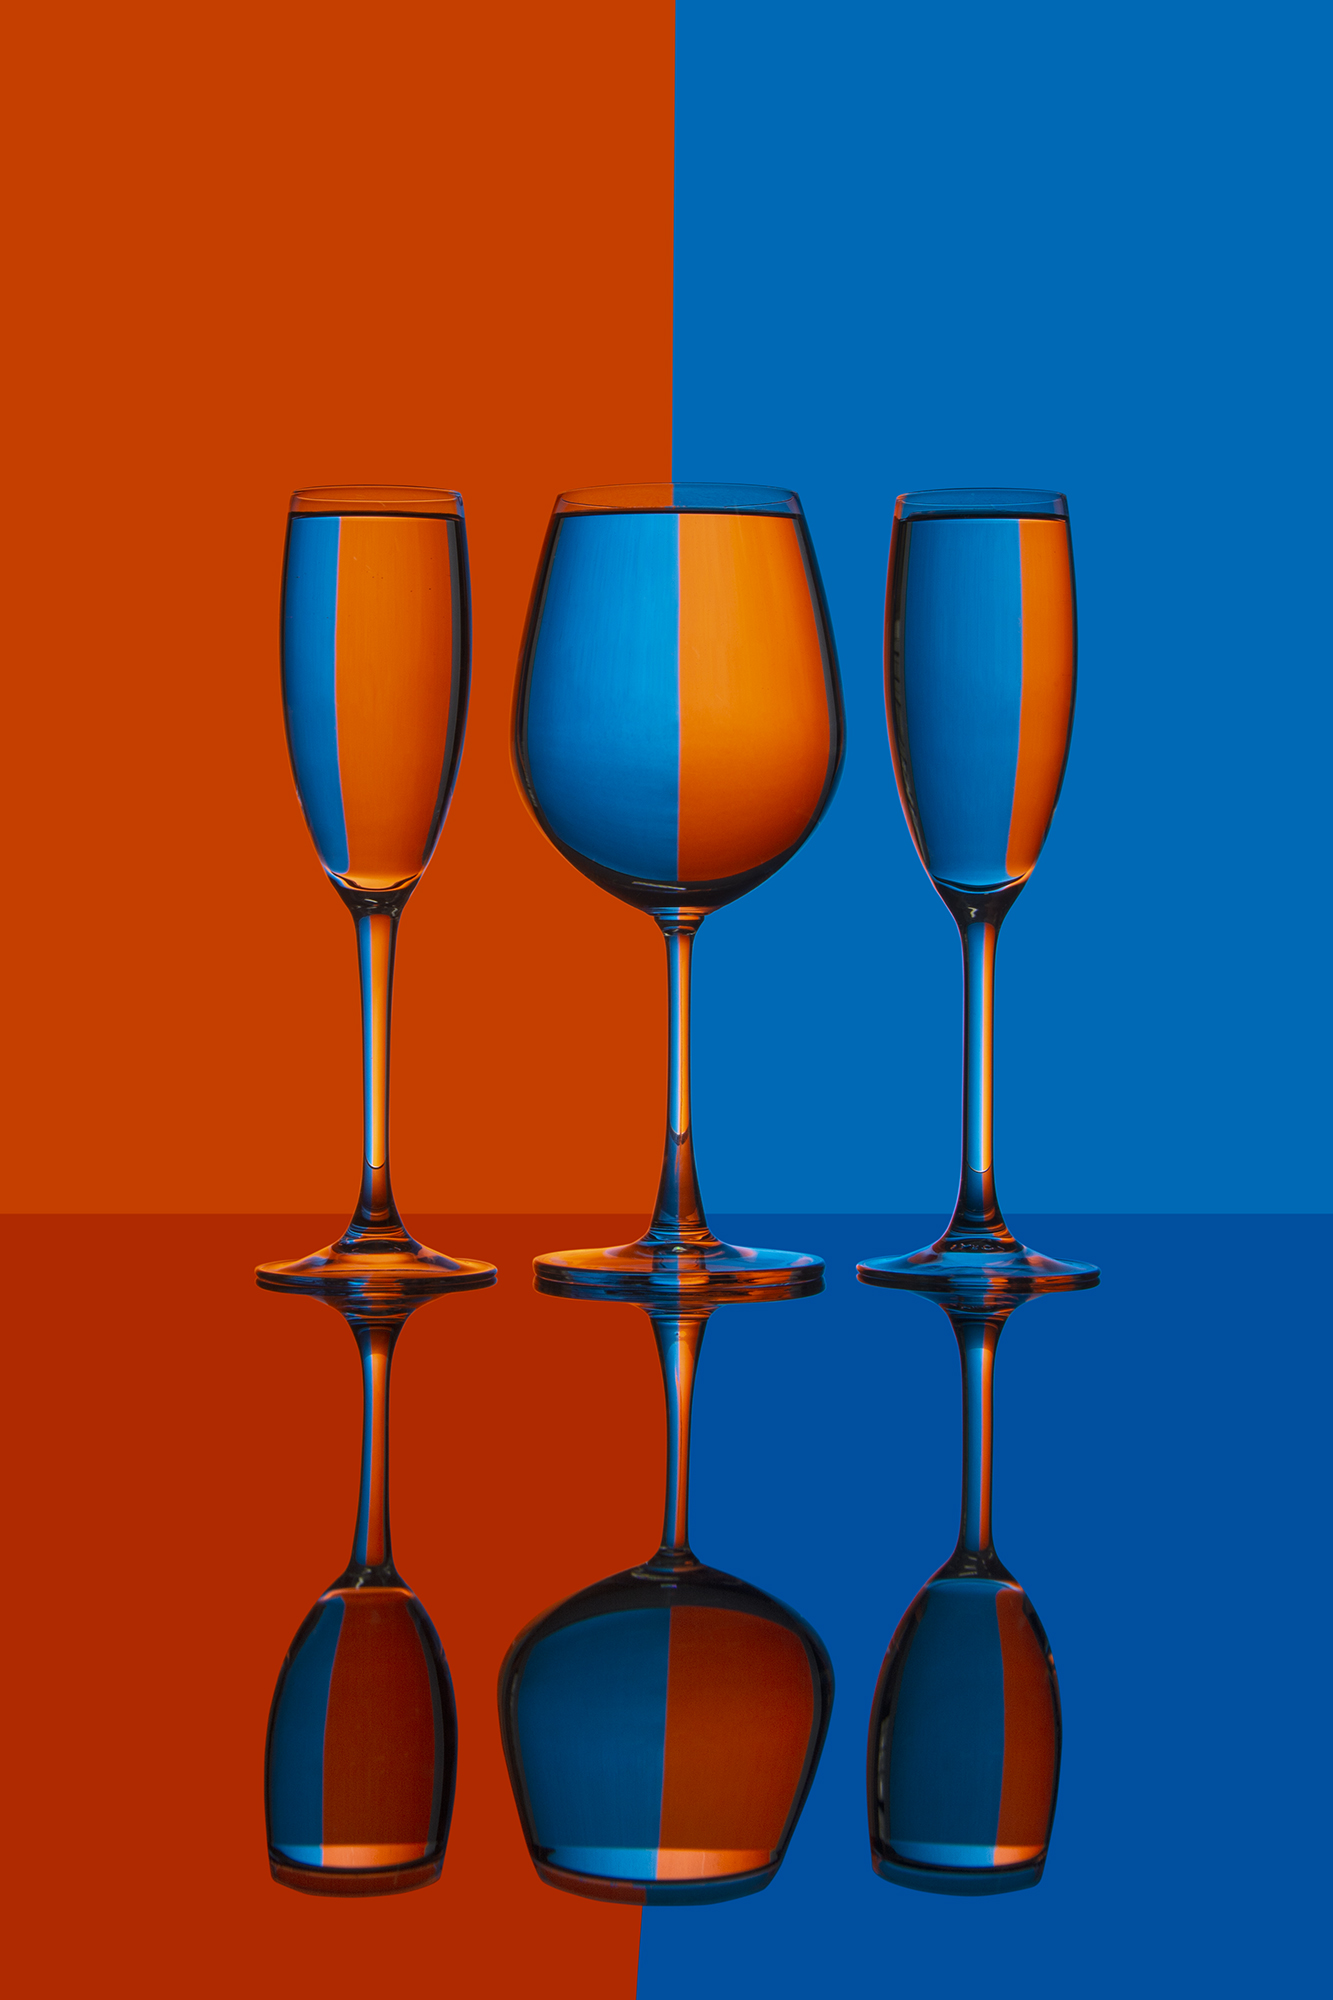 This image was shot with bright field technique using the glassware